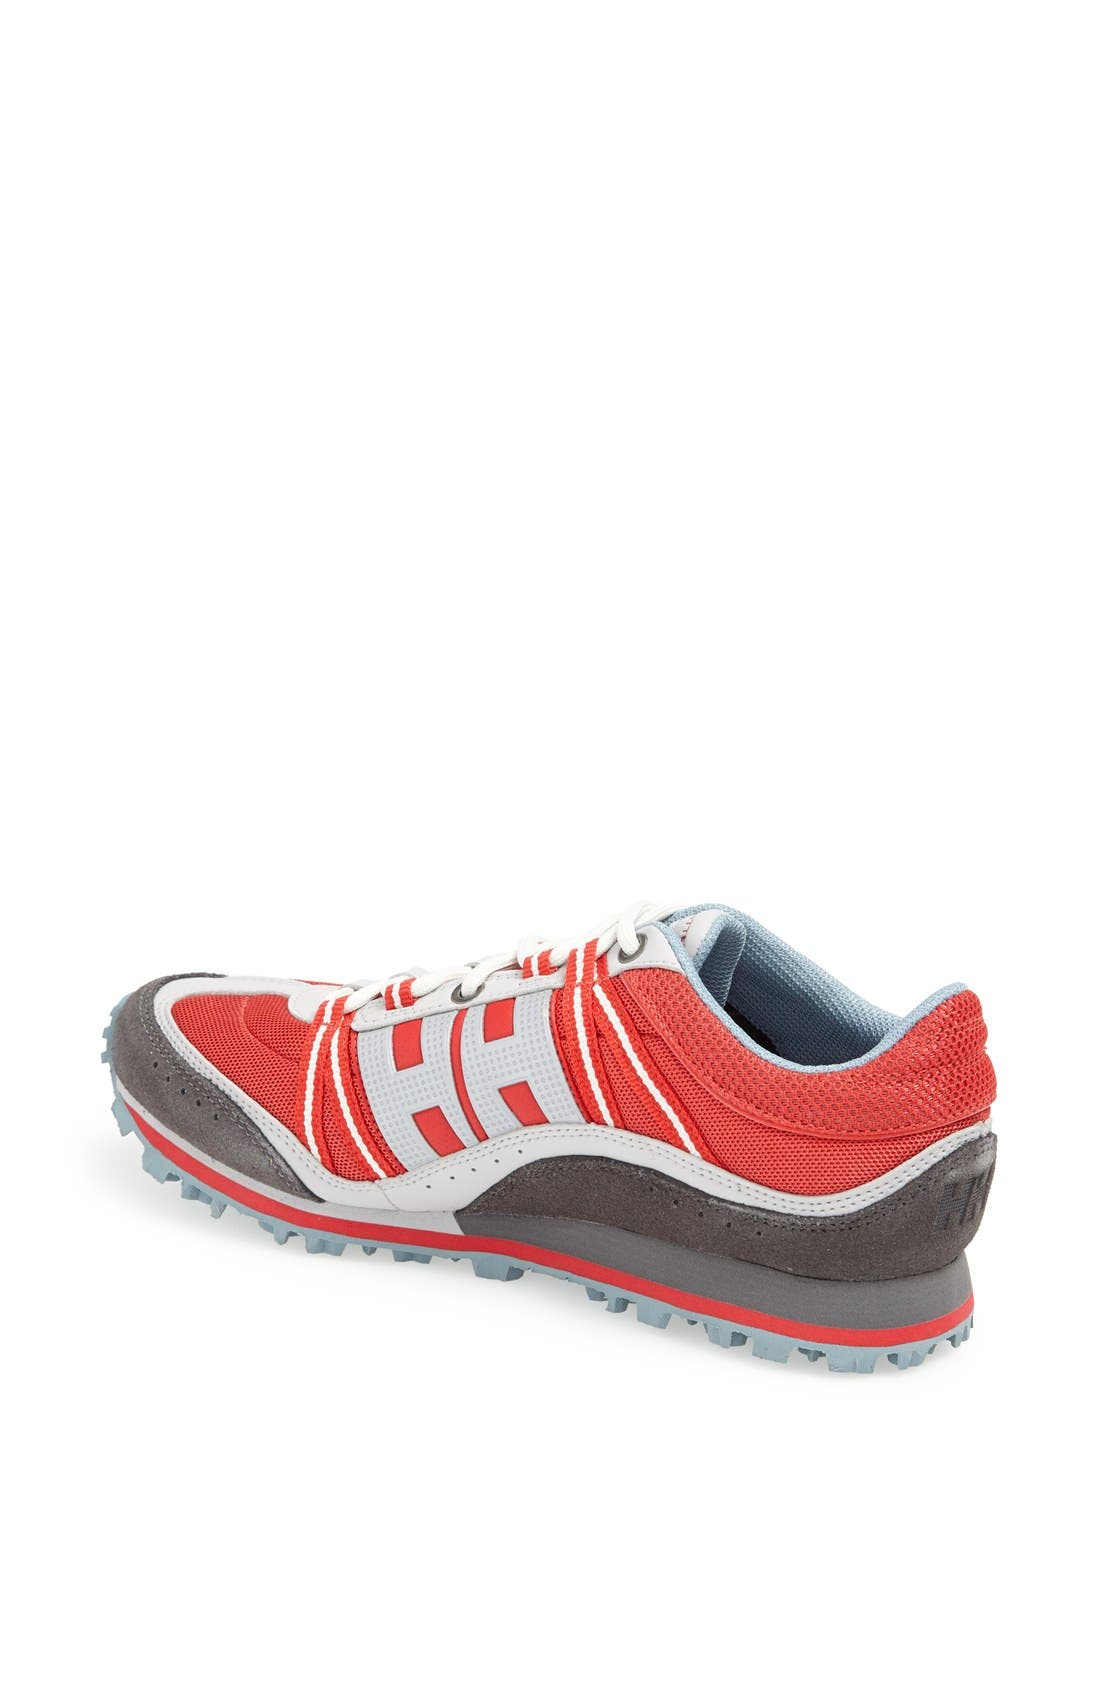 Alternate Image 2  - Helly Hansen 'Trail Cutter 5' Running Shoe (Women)